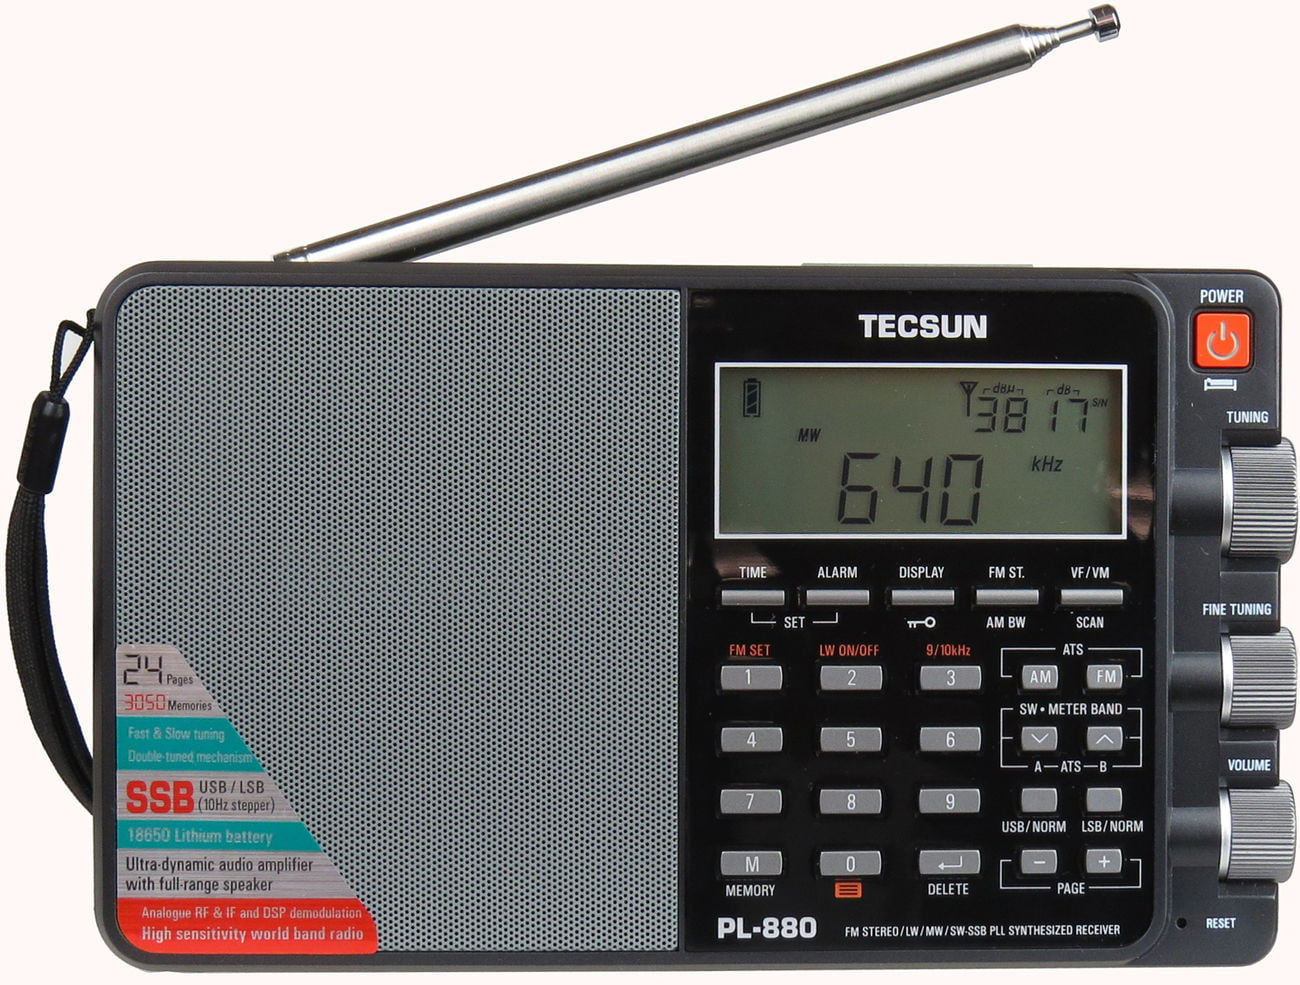 Tecsun PL880 Portable Digital PLL Dual Conversion AM FM, Longwave & Shortwave Radio with SSB (Single Side... by Tecsun